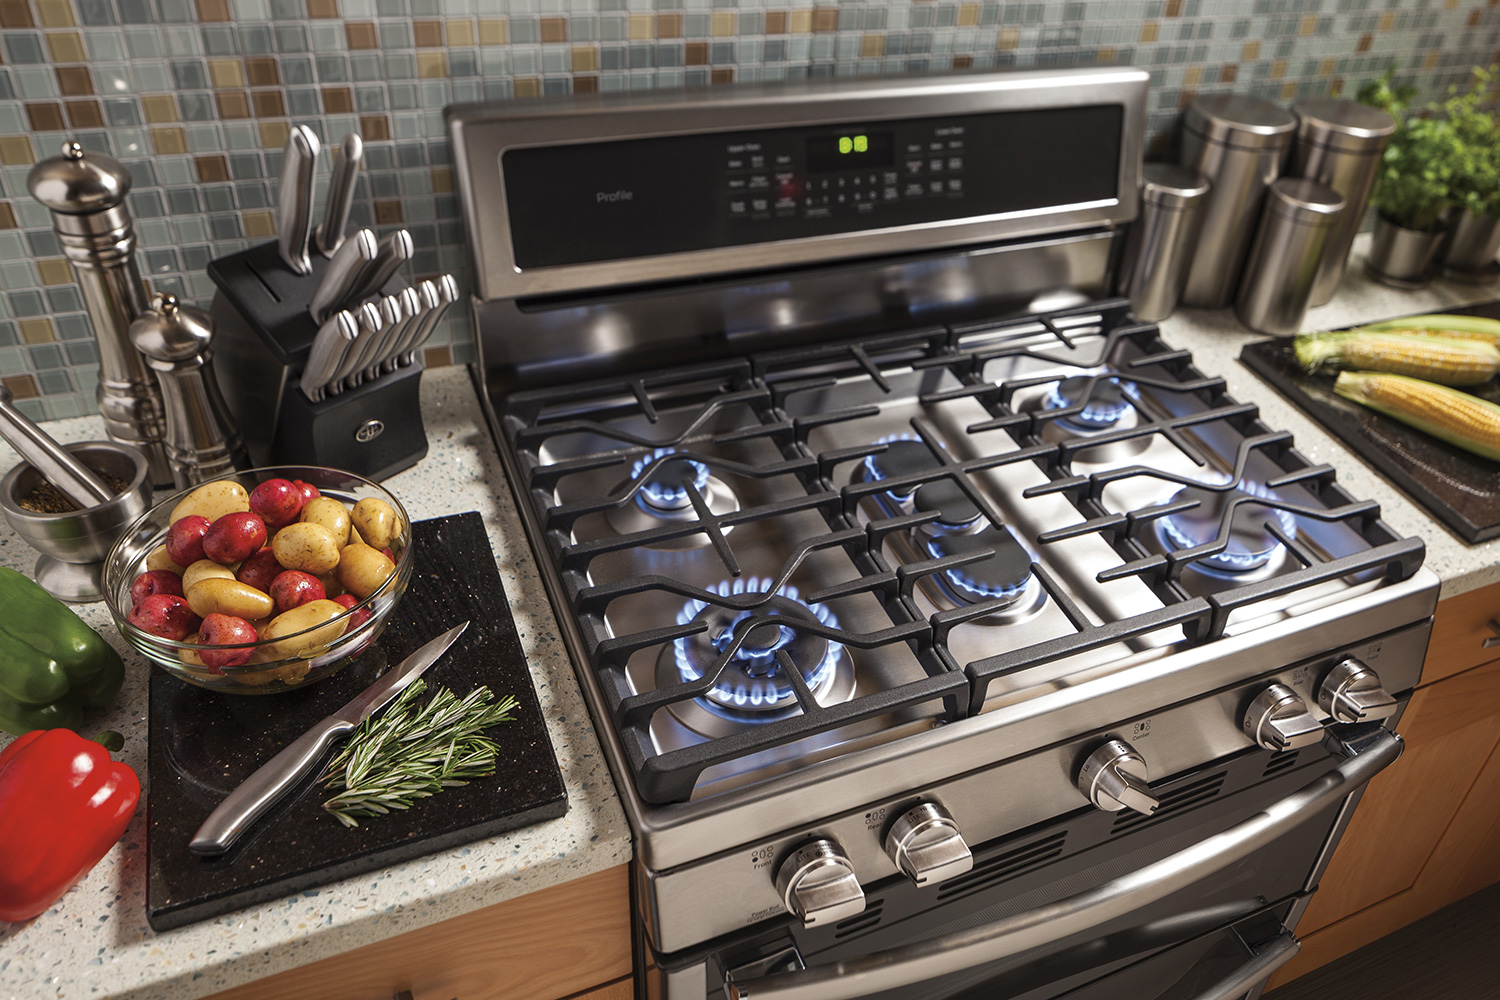 The Best Range Stove Or Oven You Can Buy And 6